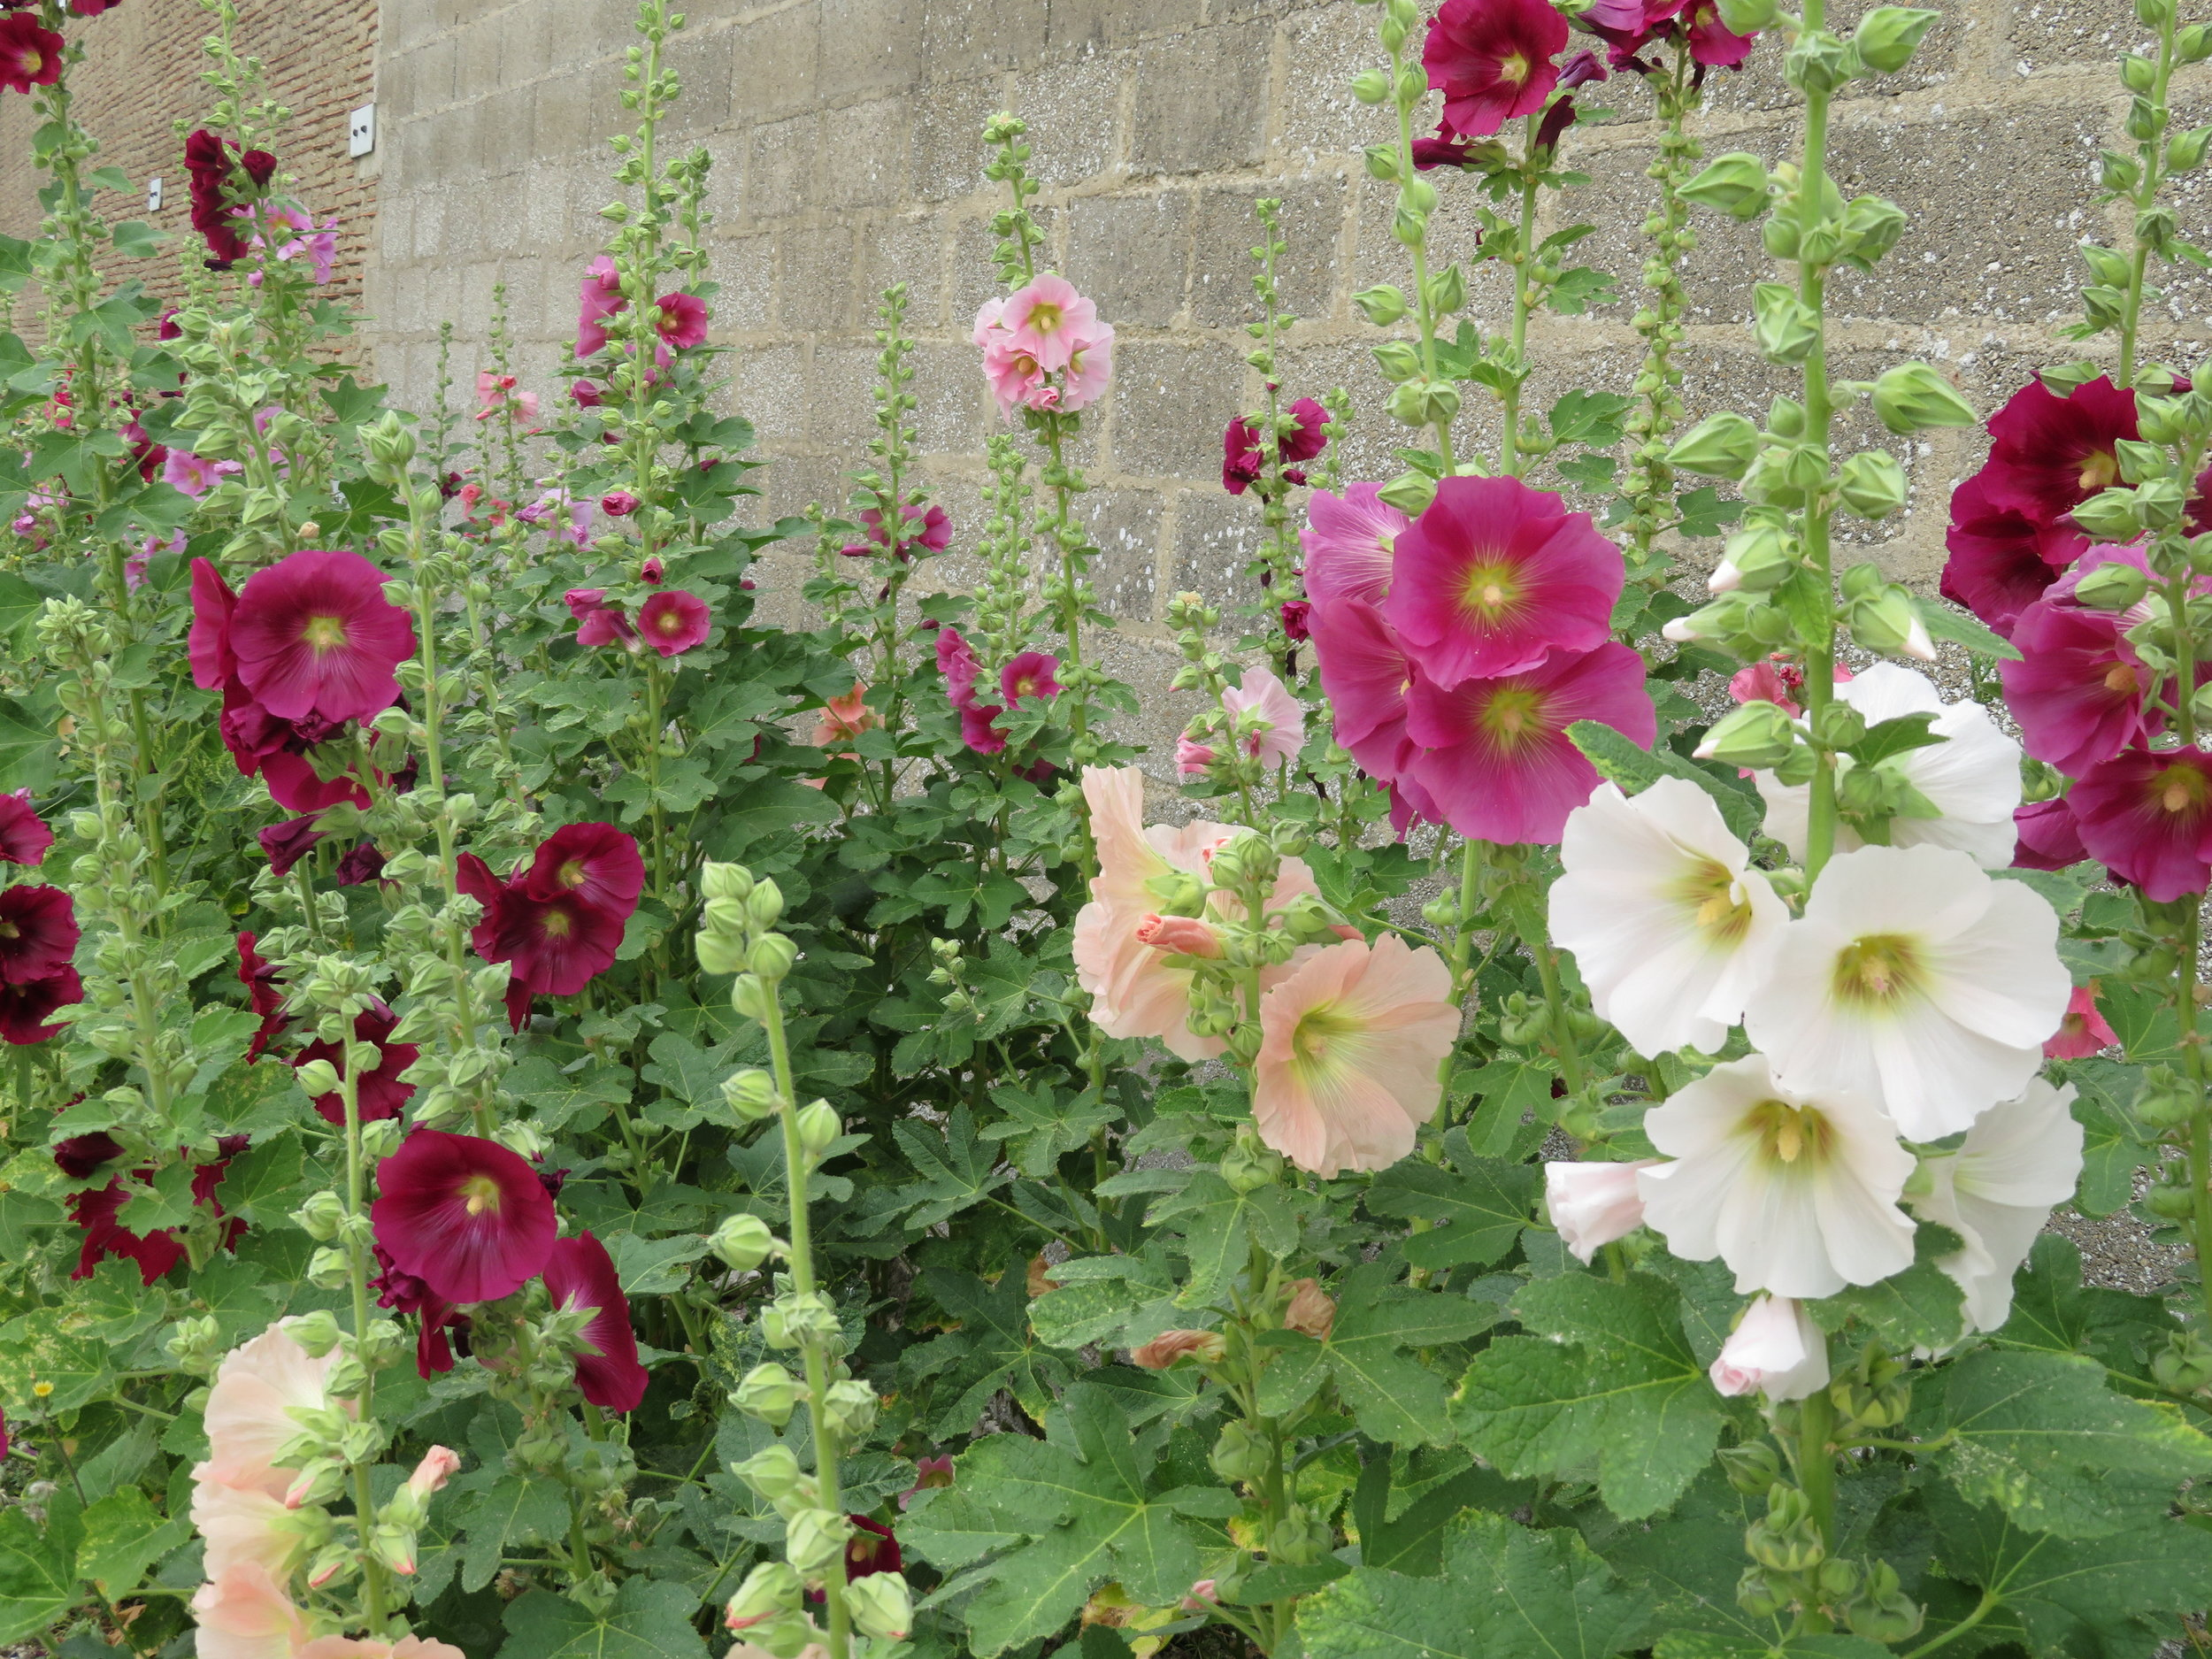 Hollyhocks seem to be the prevalent cultivated flower here and they grew profusely in everyone's garden.